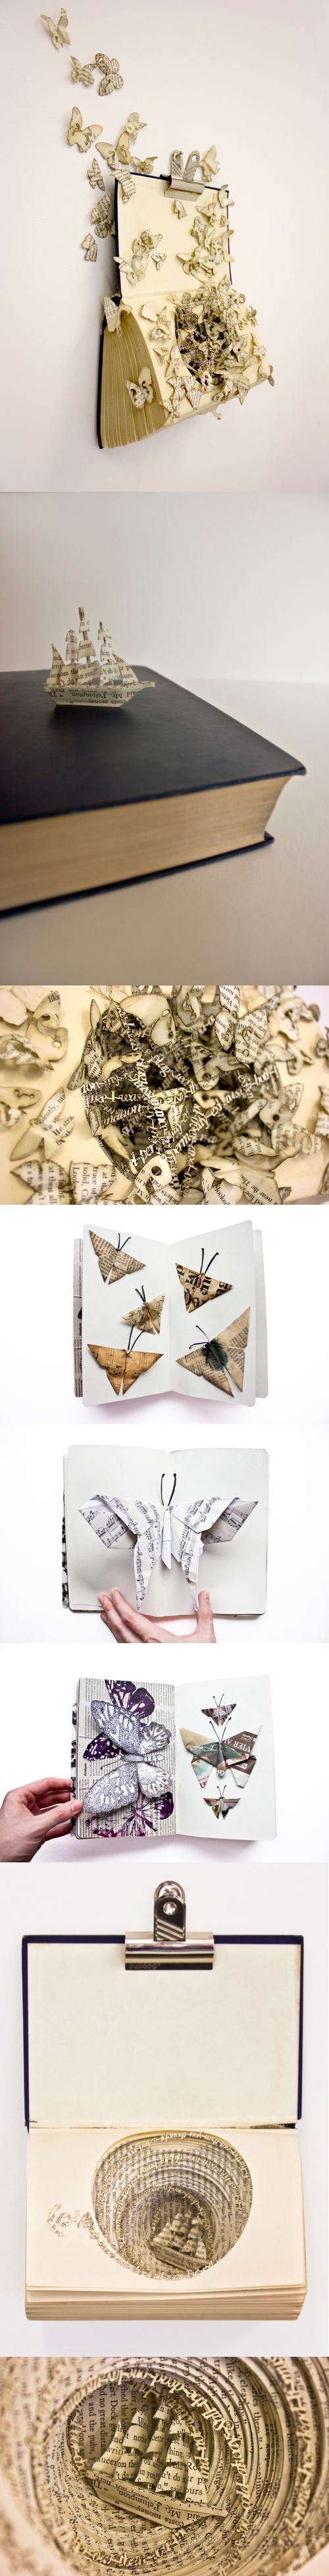 This artist book was created by Thomas Wightman. This book is about butterflies.It was created by using a scalpel to cut out different shapes of butterflies. I like this book because it looks like the butterflies are flying around and it looks 3D.                                                                                                                                                      More